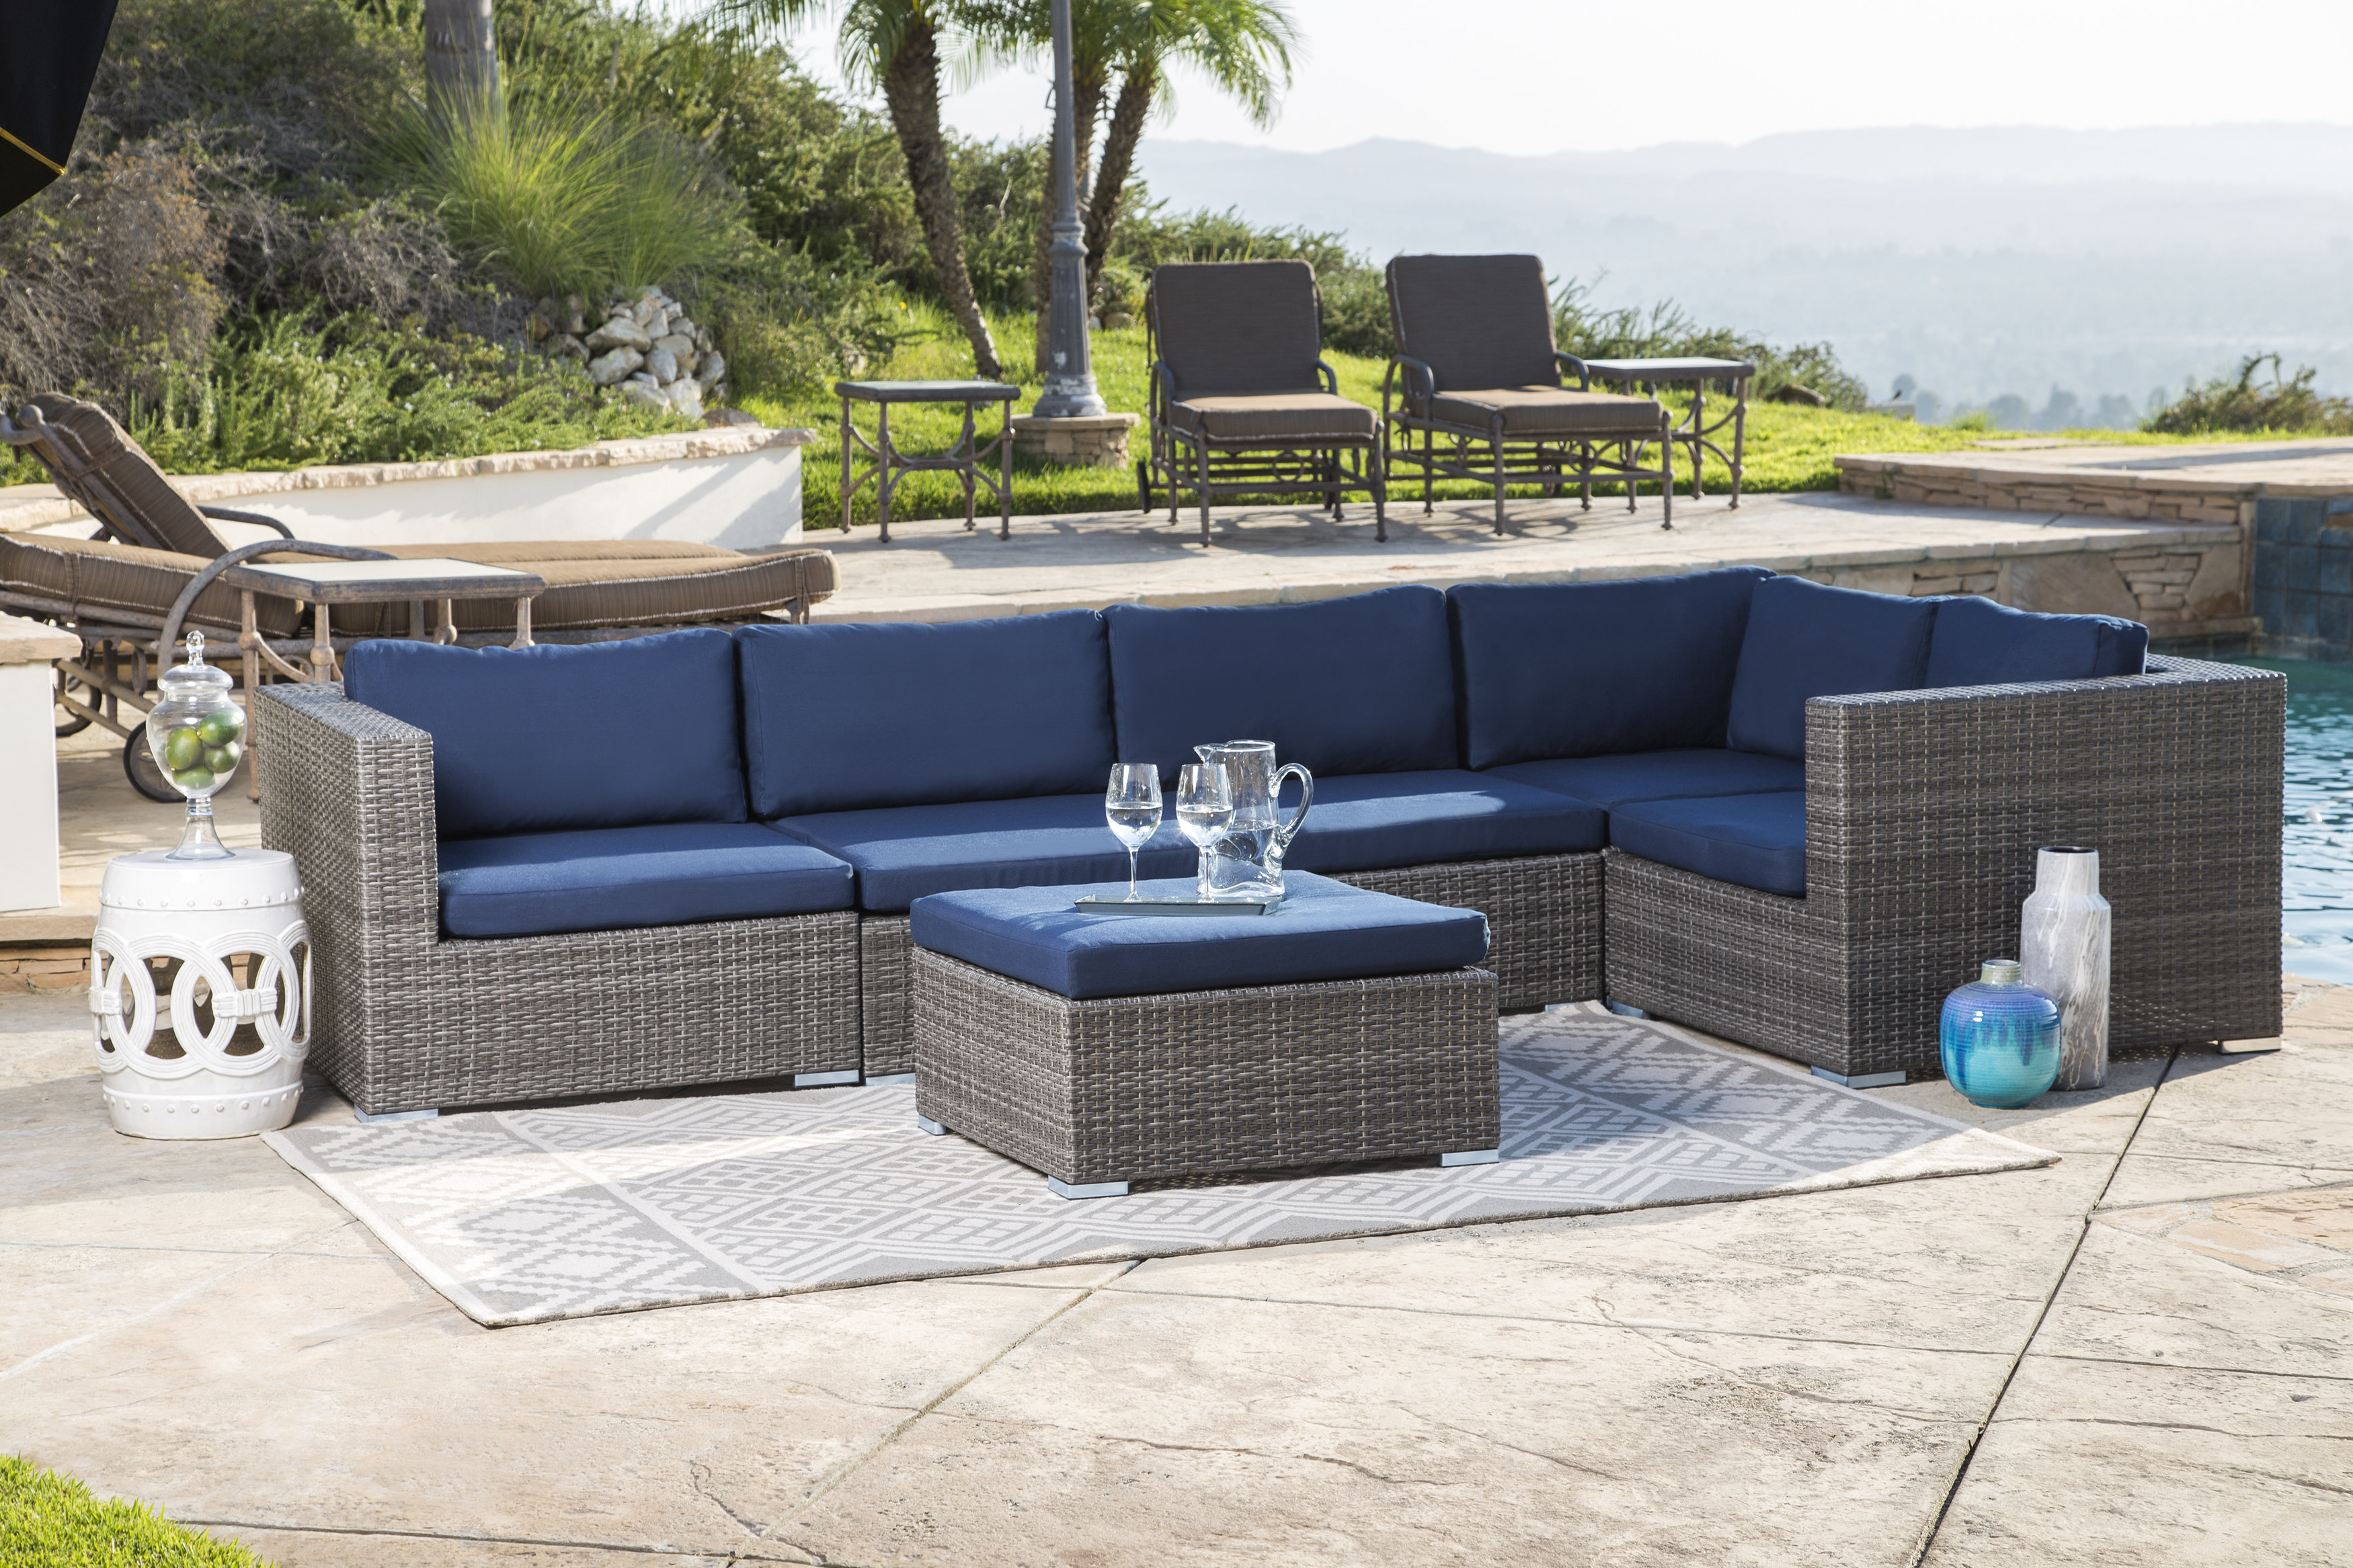 Ostrowski Outdoor Wicker Patio Sectional With Cushions Within Well Liked Keiran Patio Sofas With Cushions (View 6 of 20)